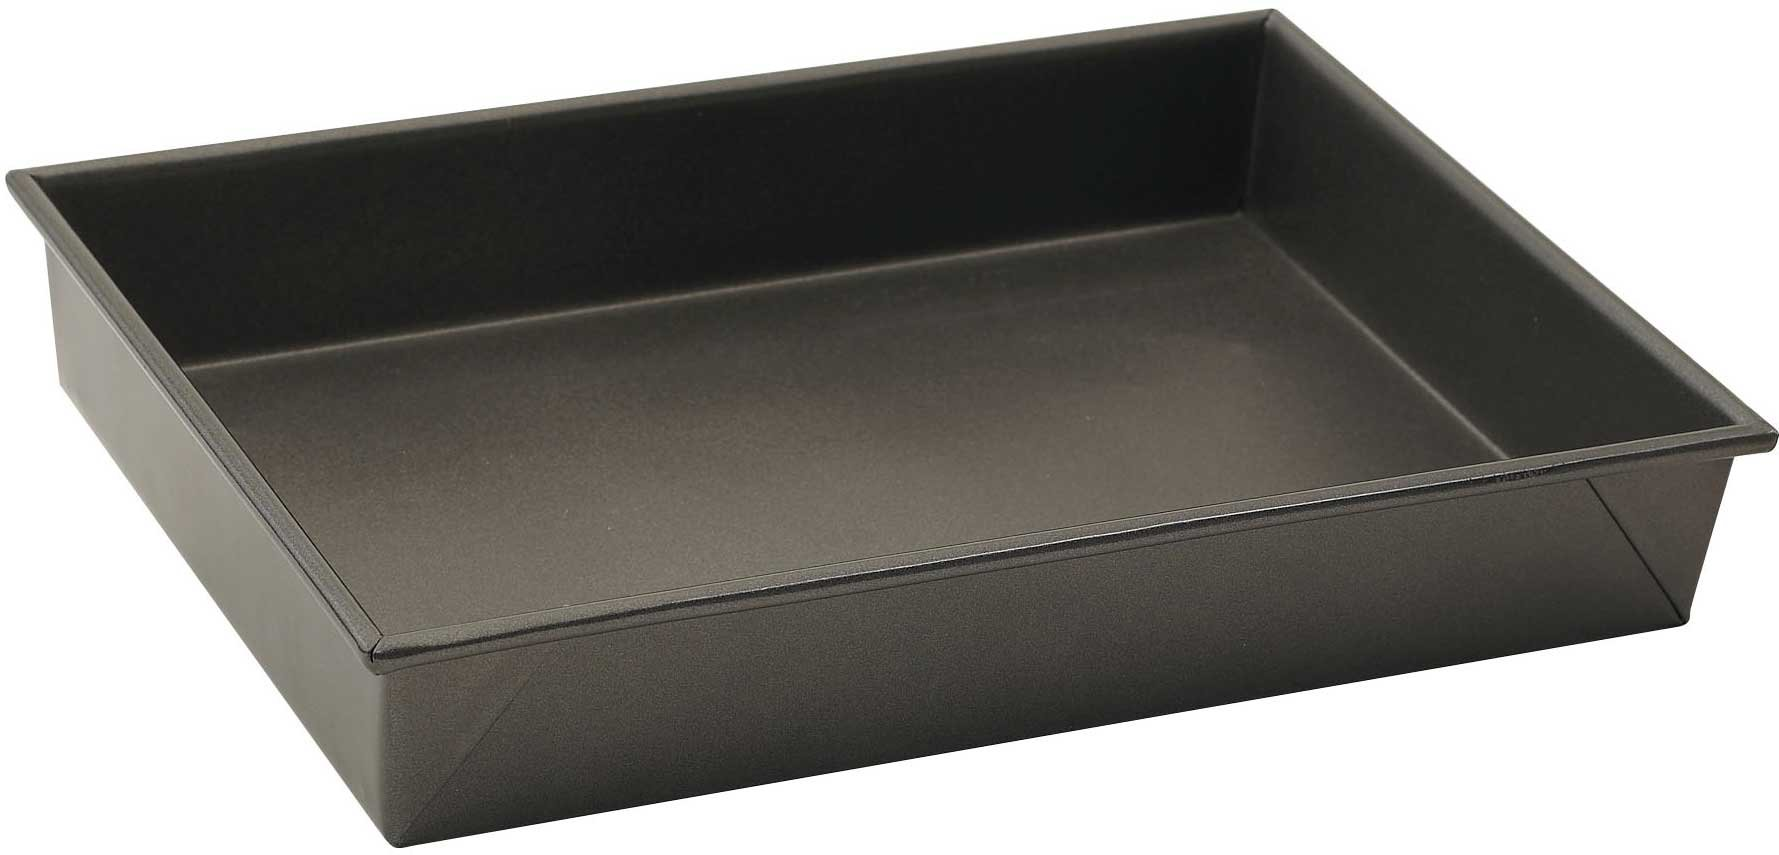 WINCO HRCP-1309 Rectangular Non-Stick Cake Pan, 13-Inch by 9-Inch, Aluminized Steel by Winco